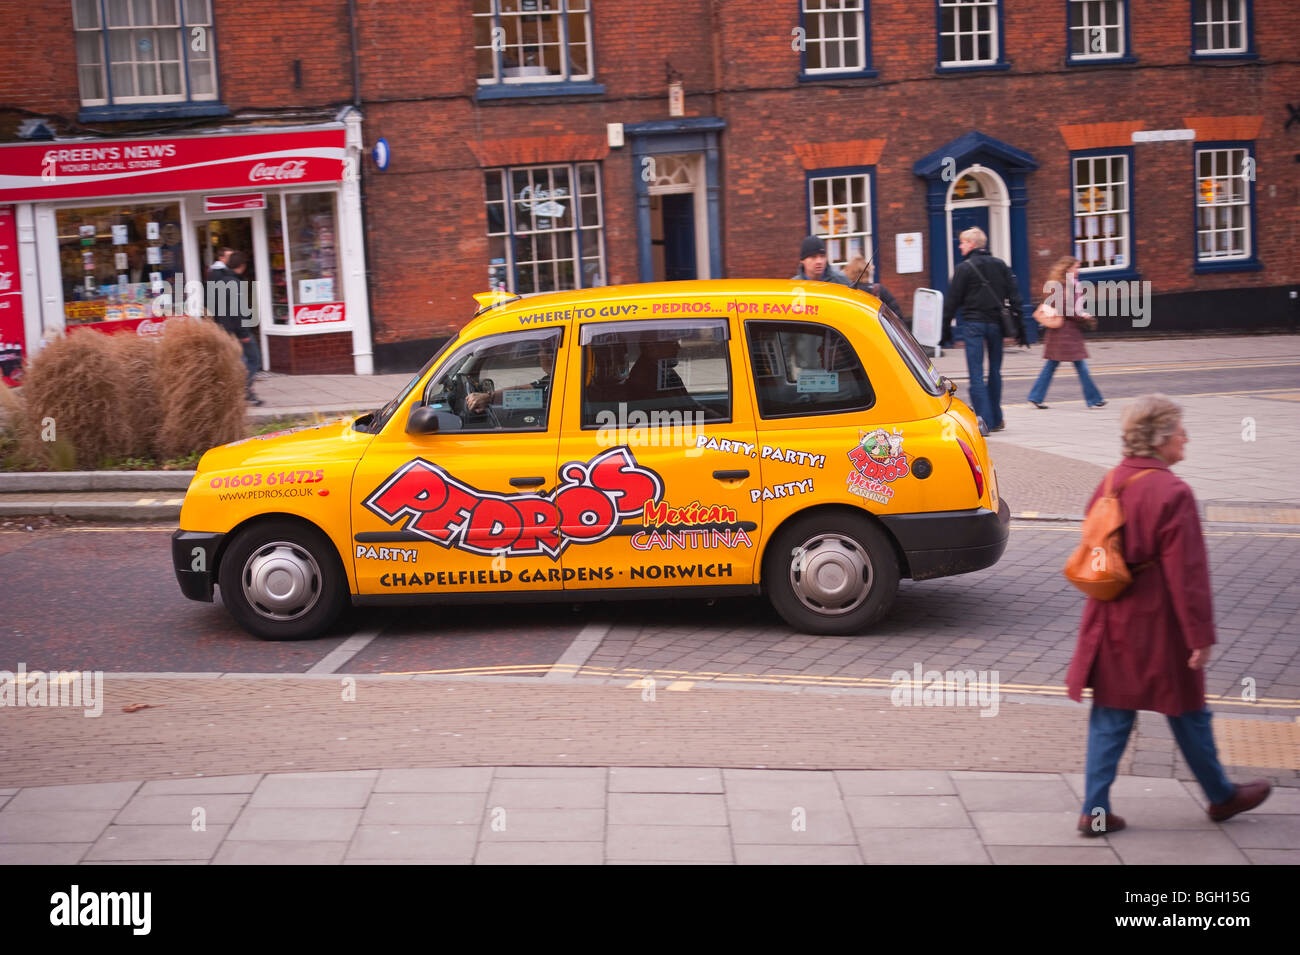 A yellow taxi cab drives through the city showing movement in Norwich,Norfolk,Uk - Stock Image